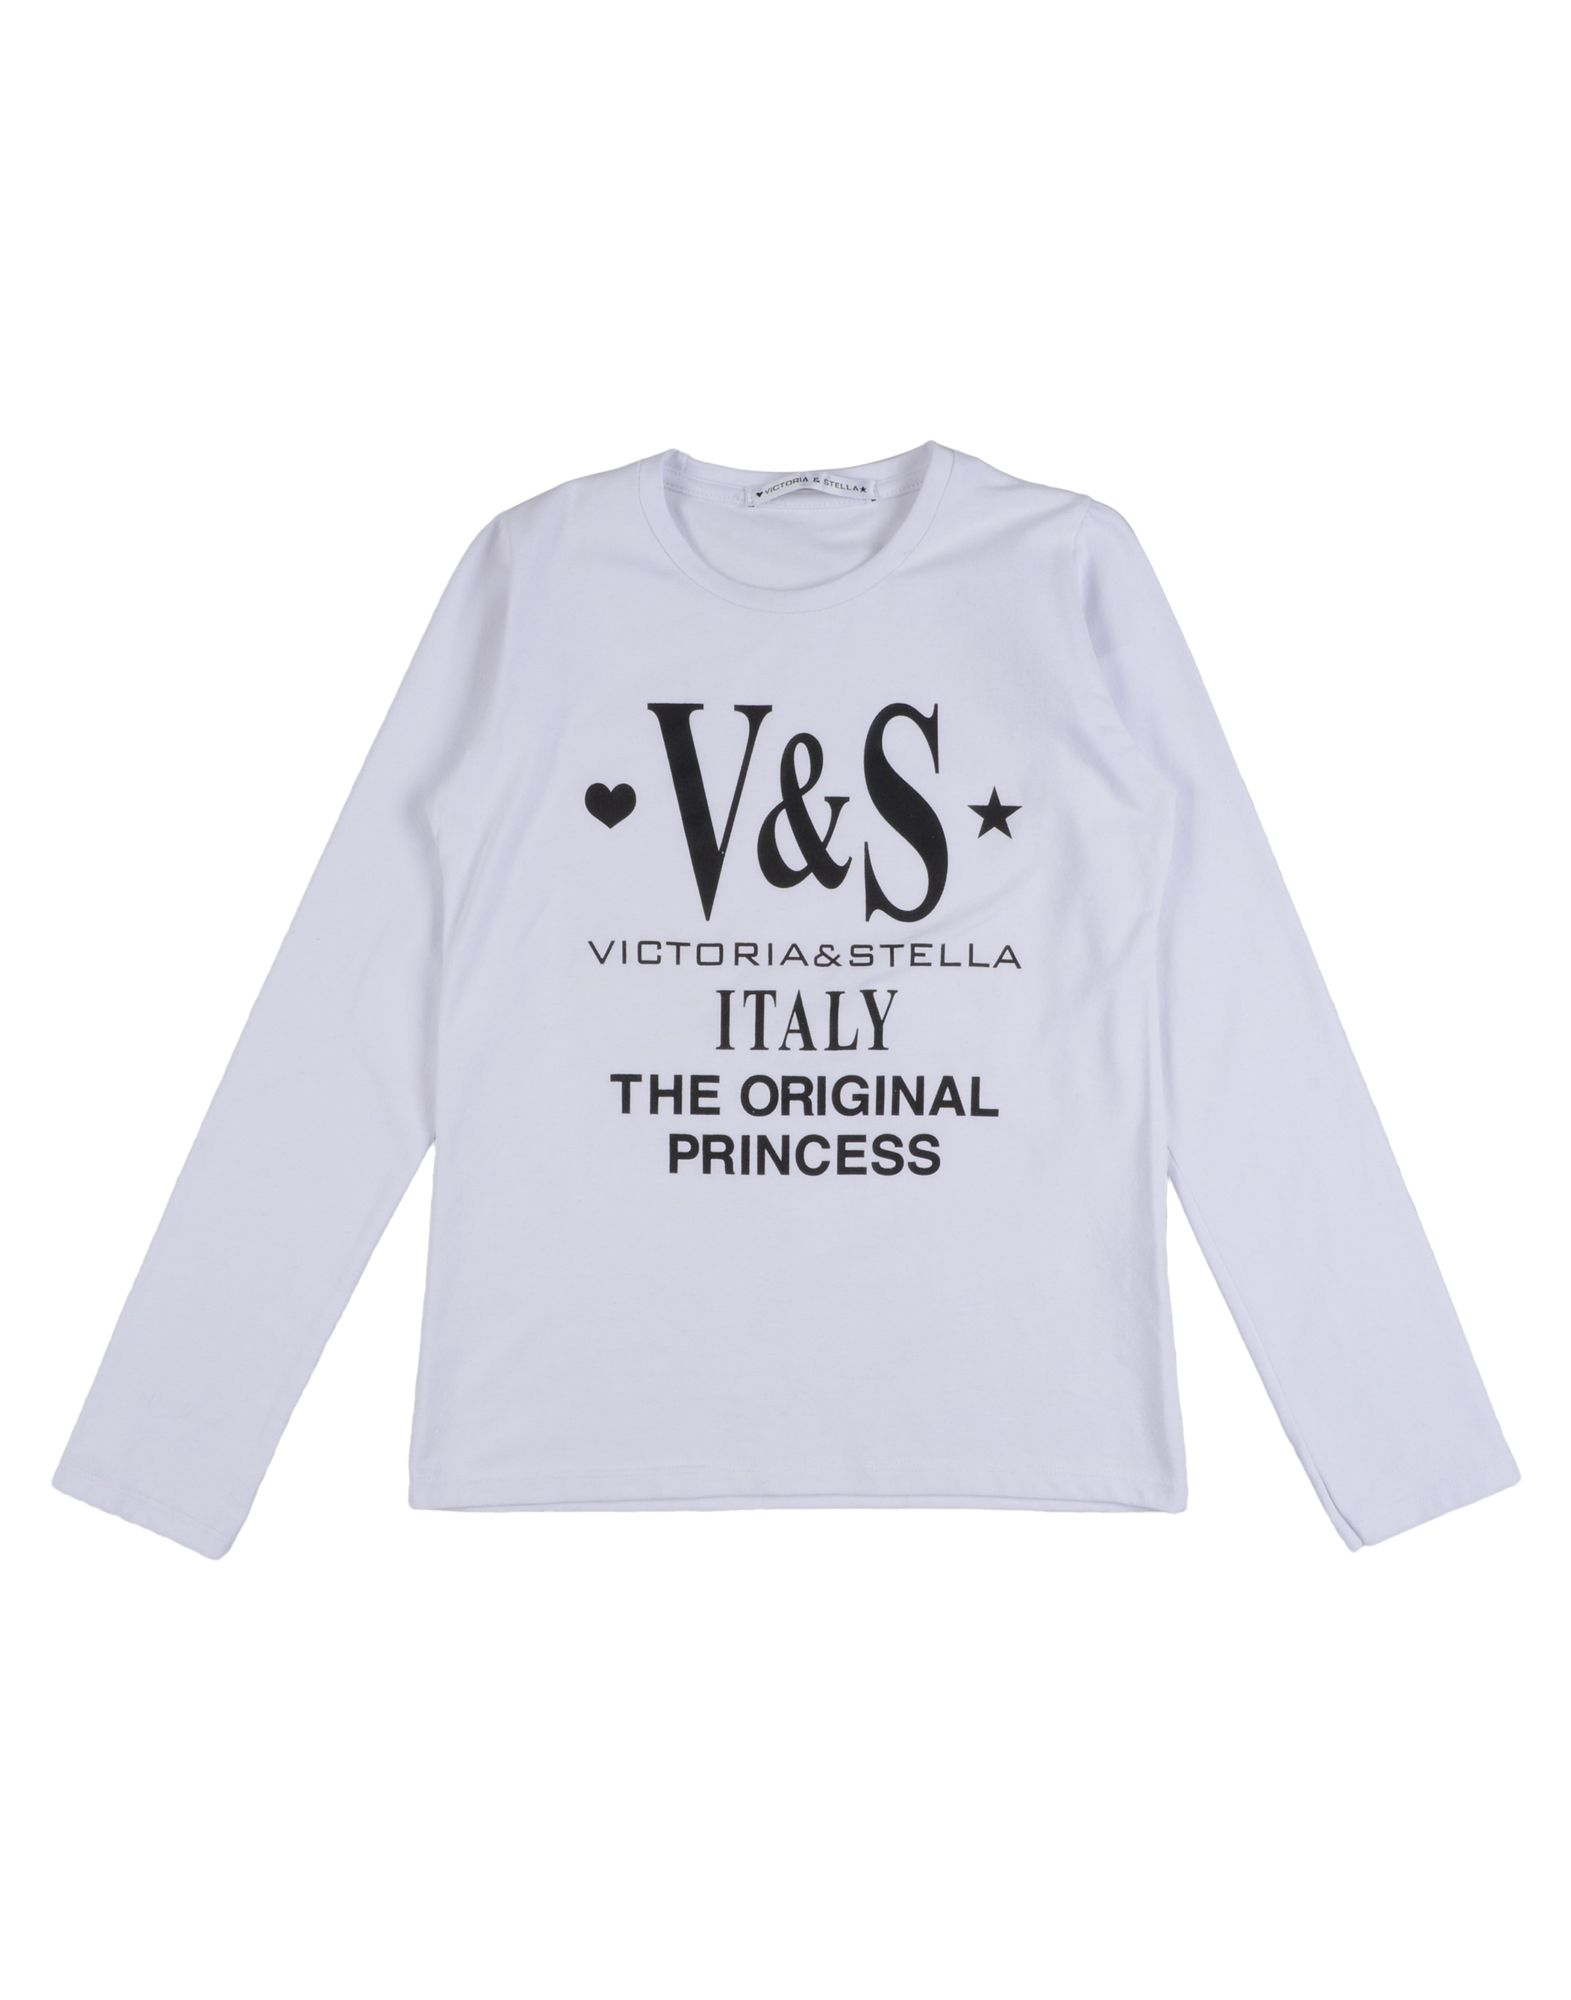 Victoria & Stella Kids' T-shirts In White